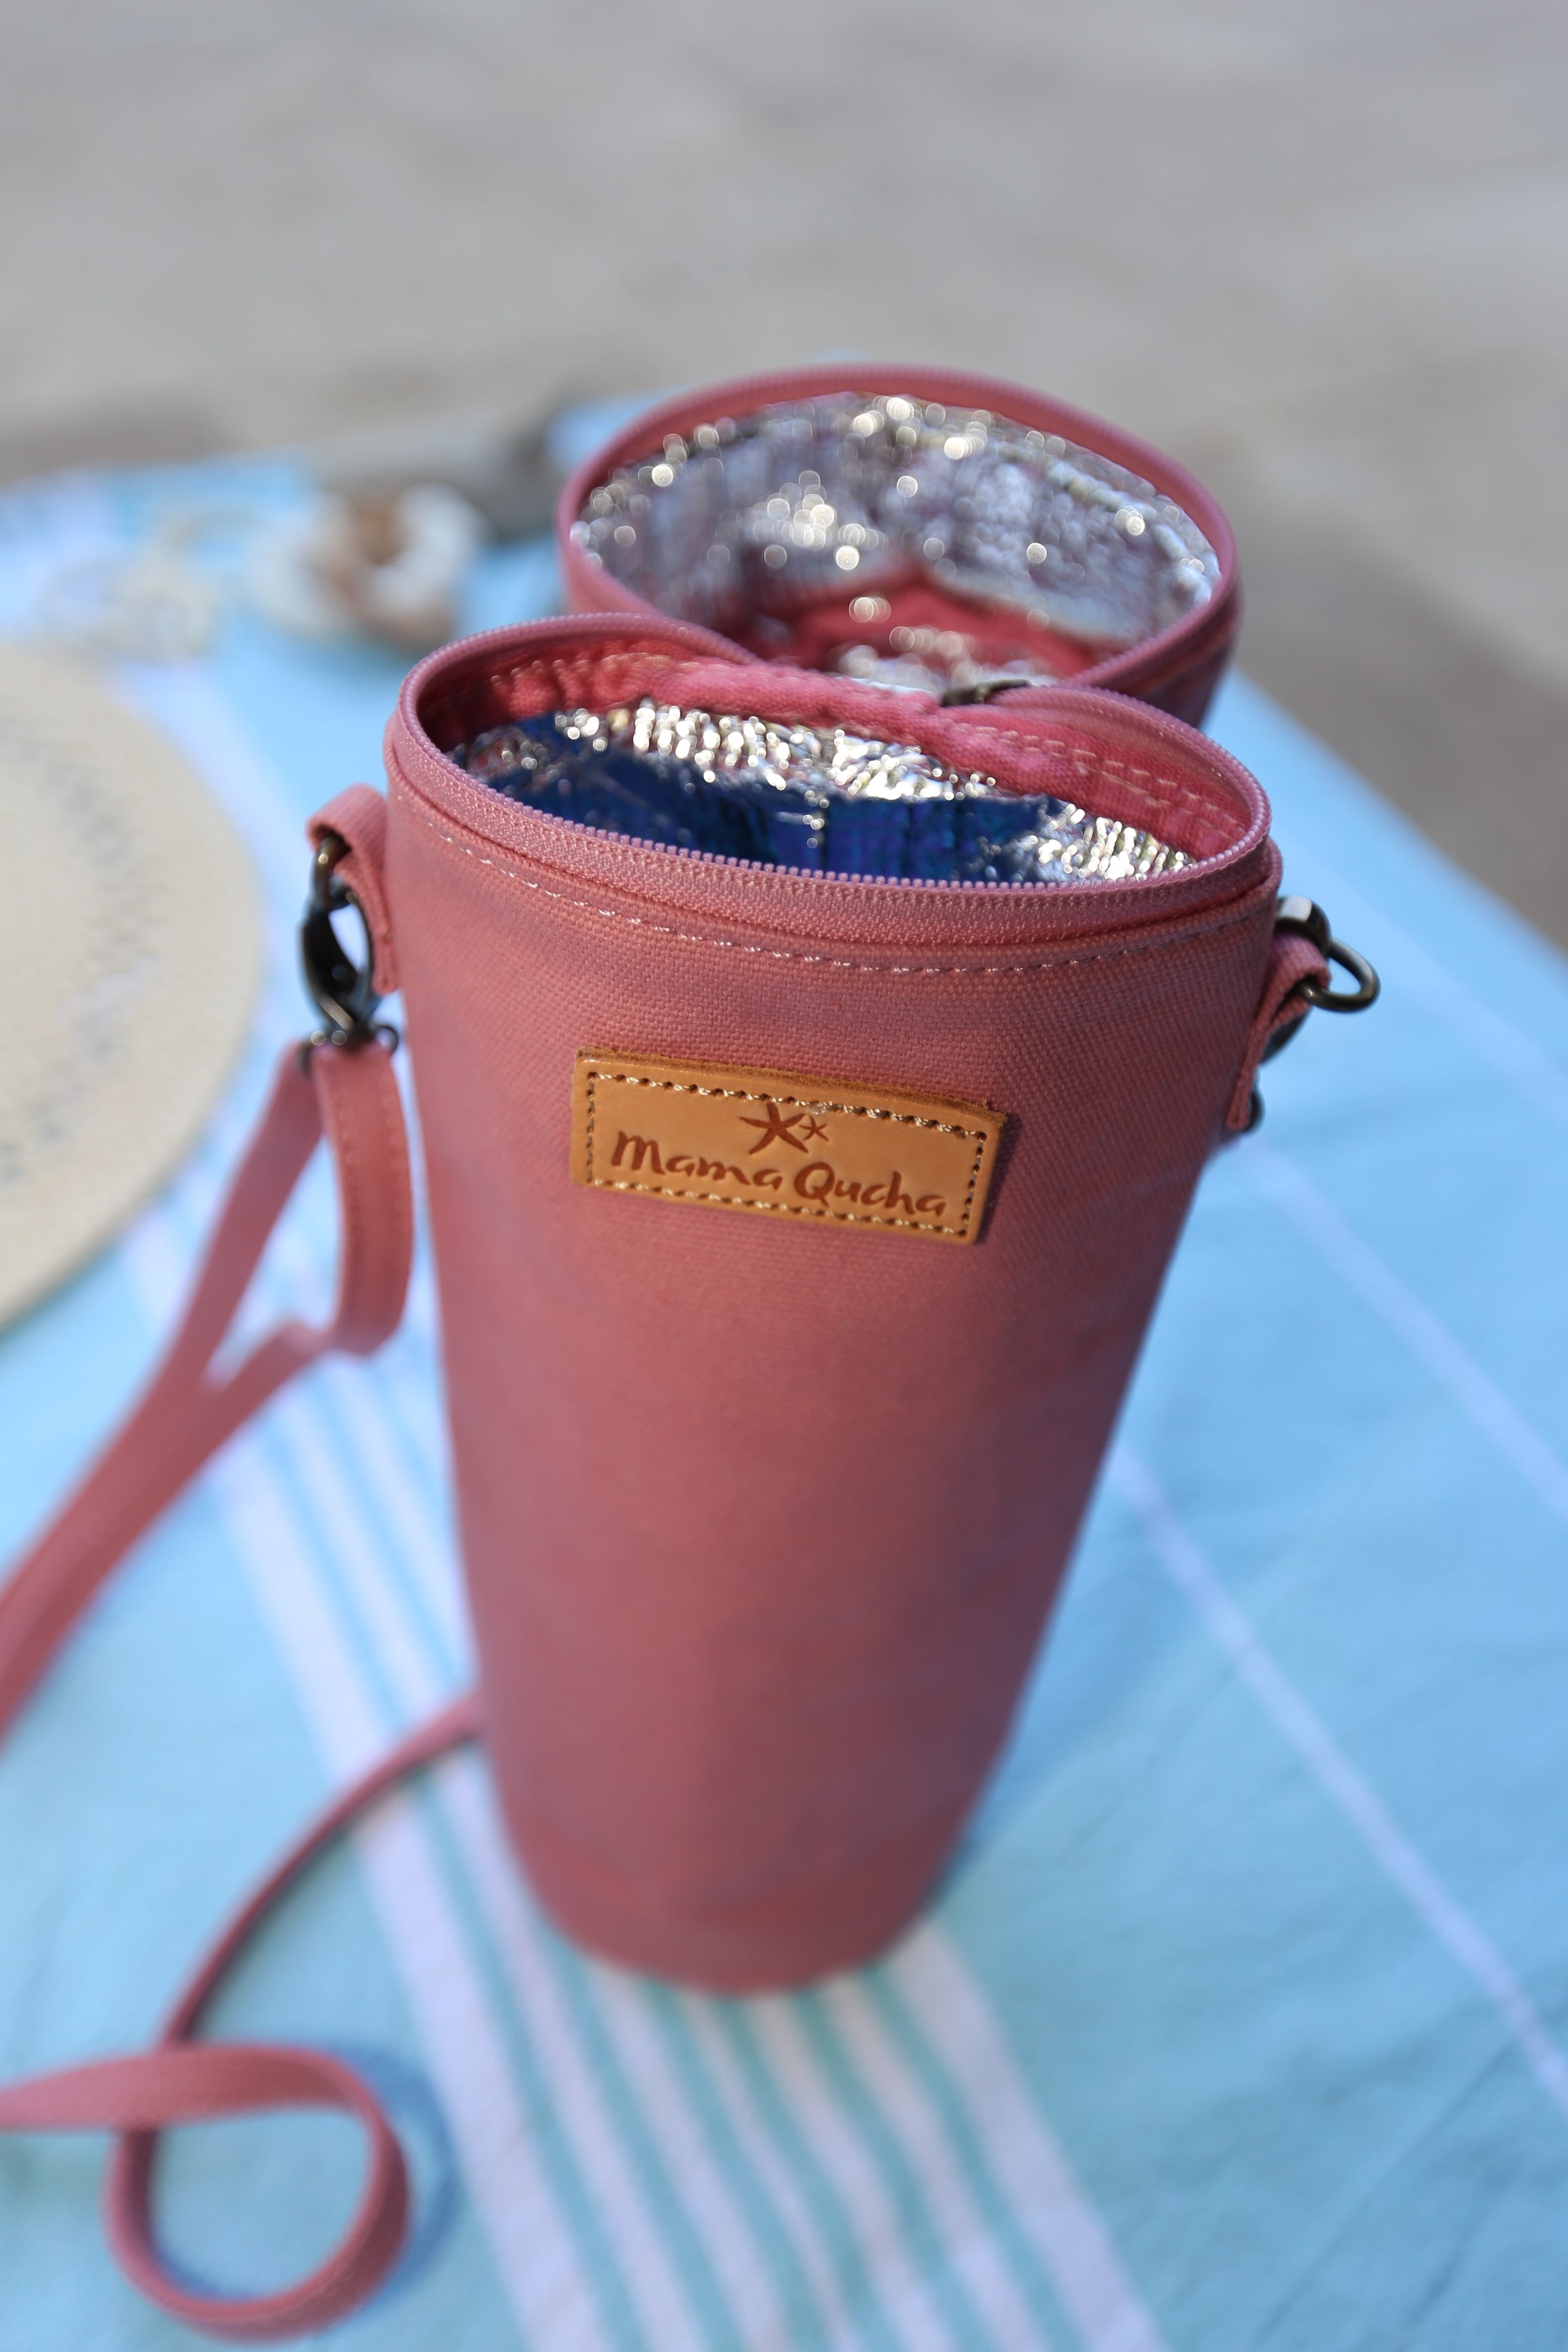 The Mama Qucha insulated bottle carrier / baby bottle holder in pink cotton show open